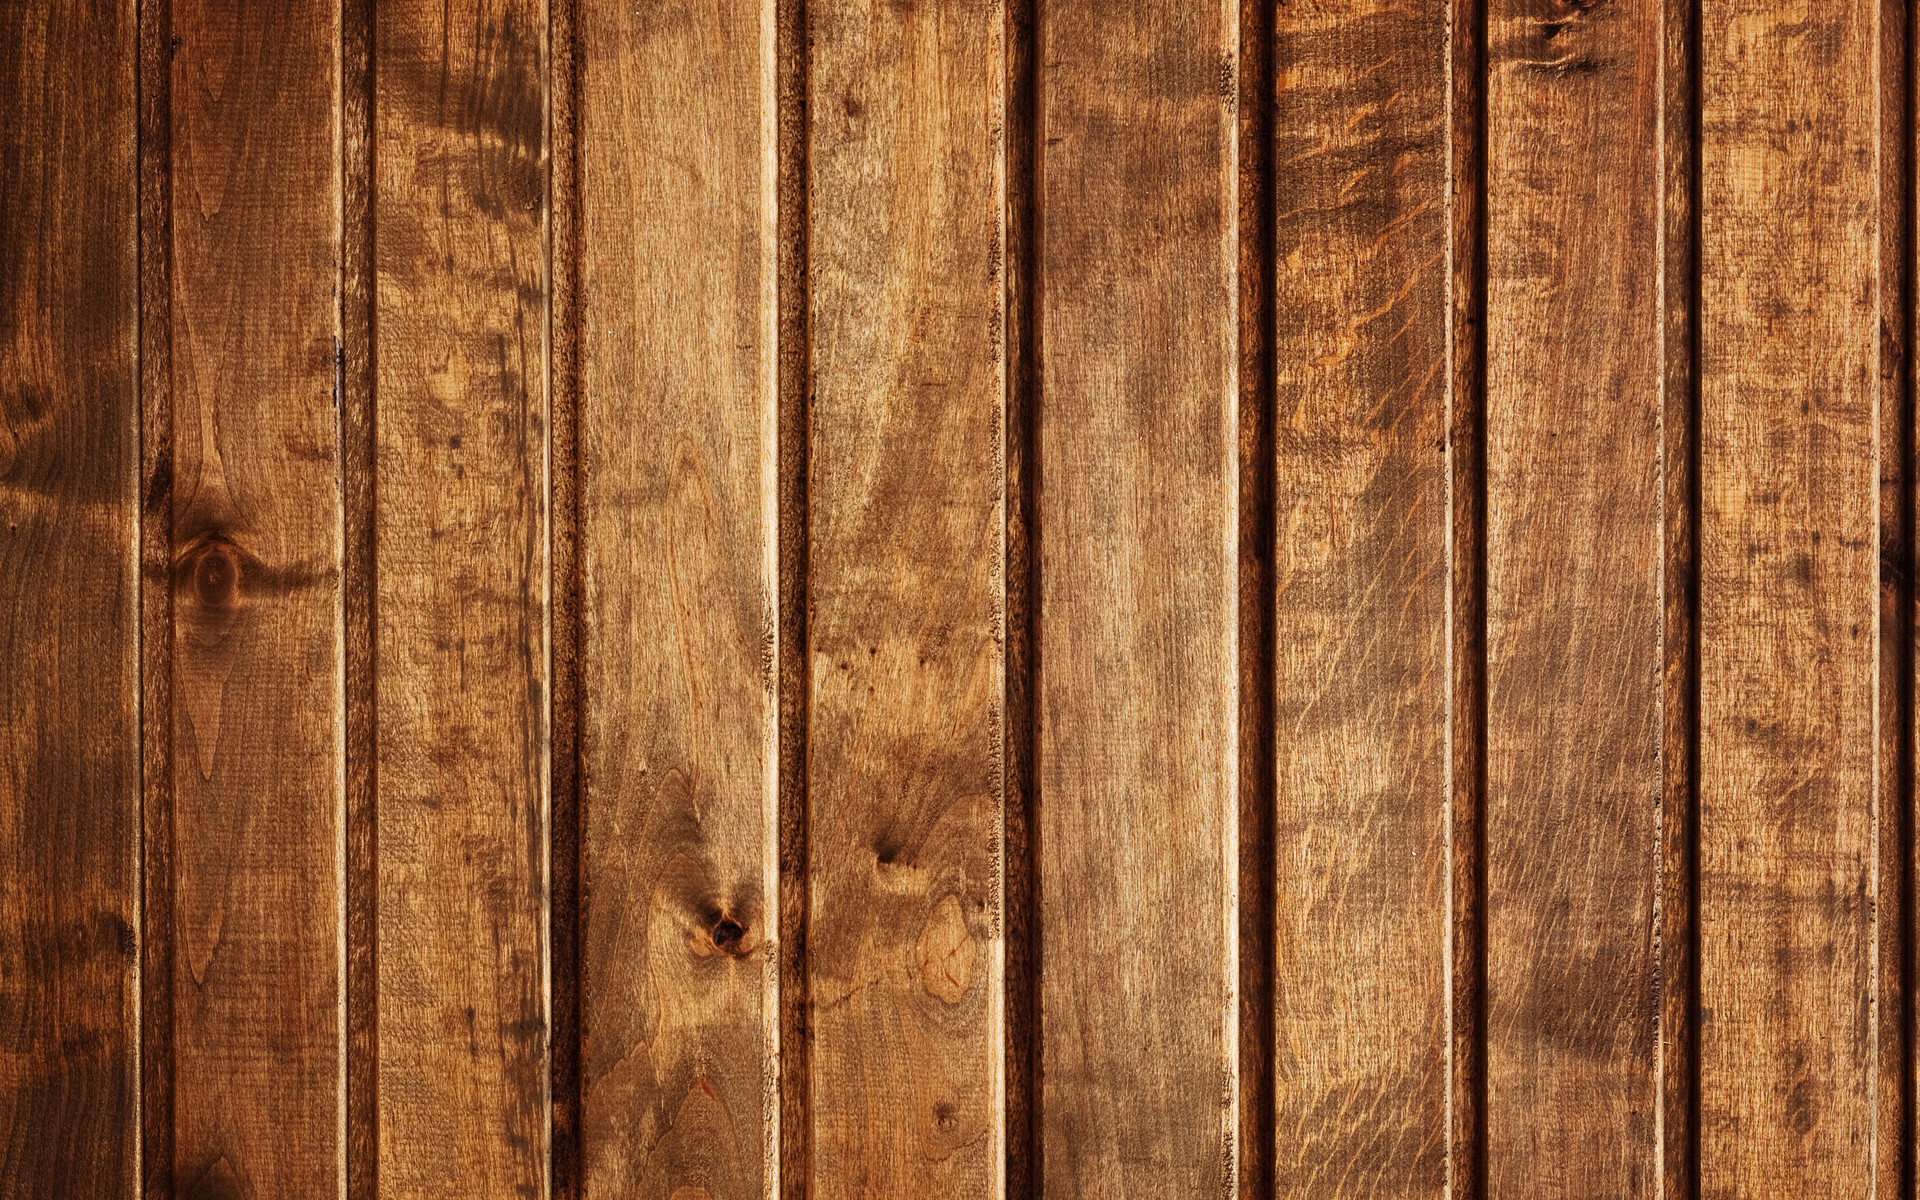 30 Amazing Free Wood Texture Backgrounds | Tech-Lovers l Web .